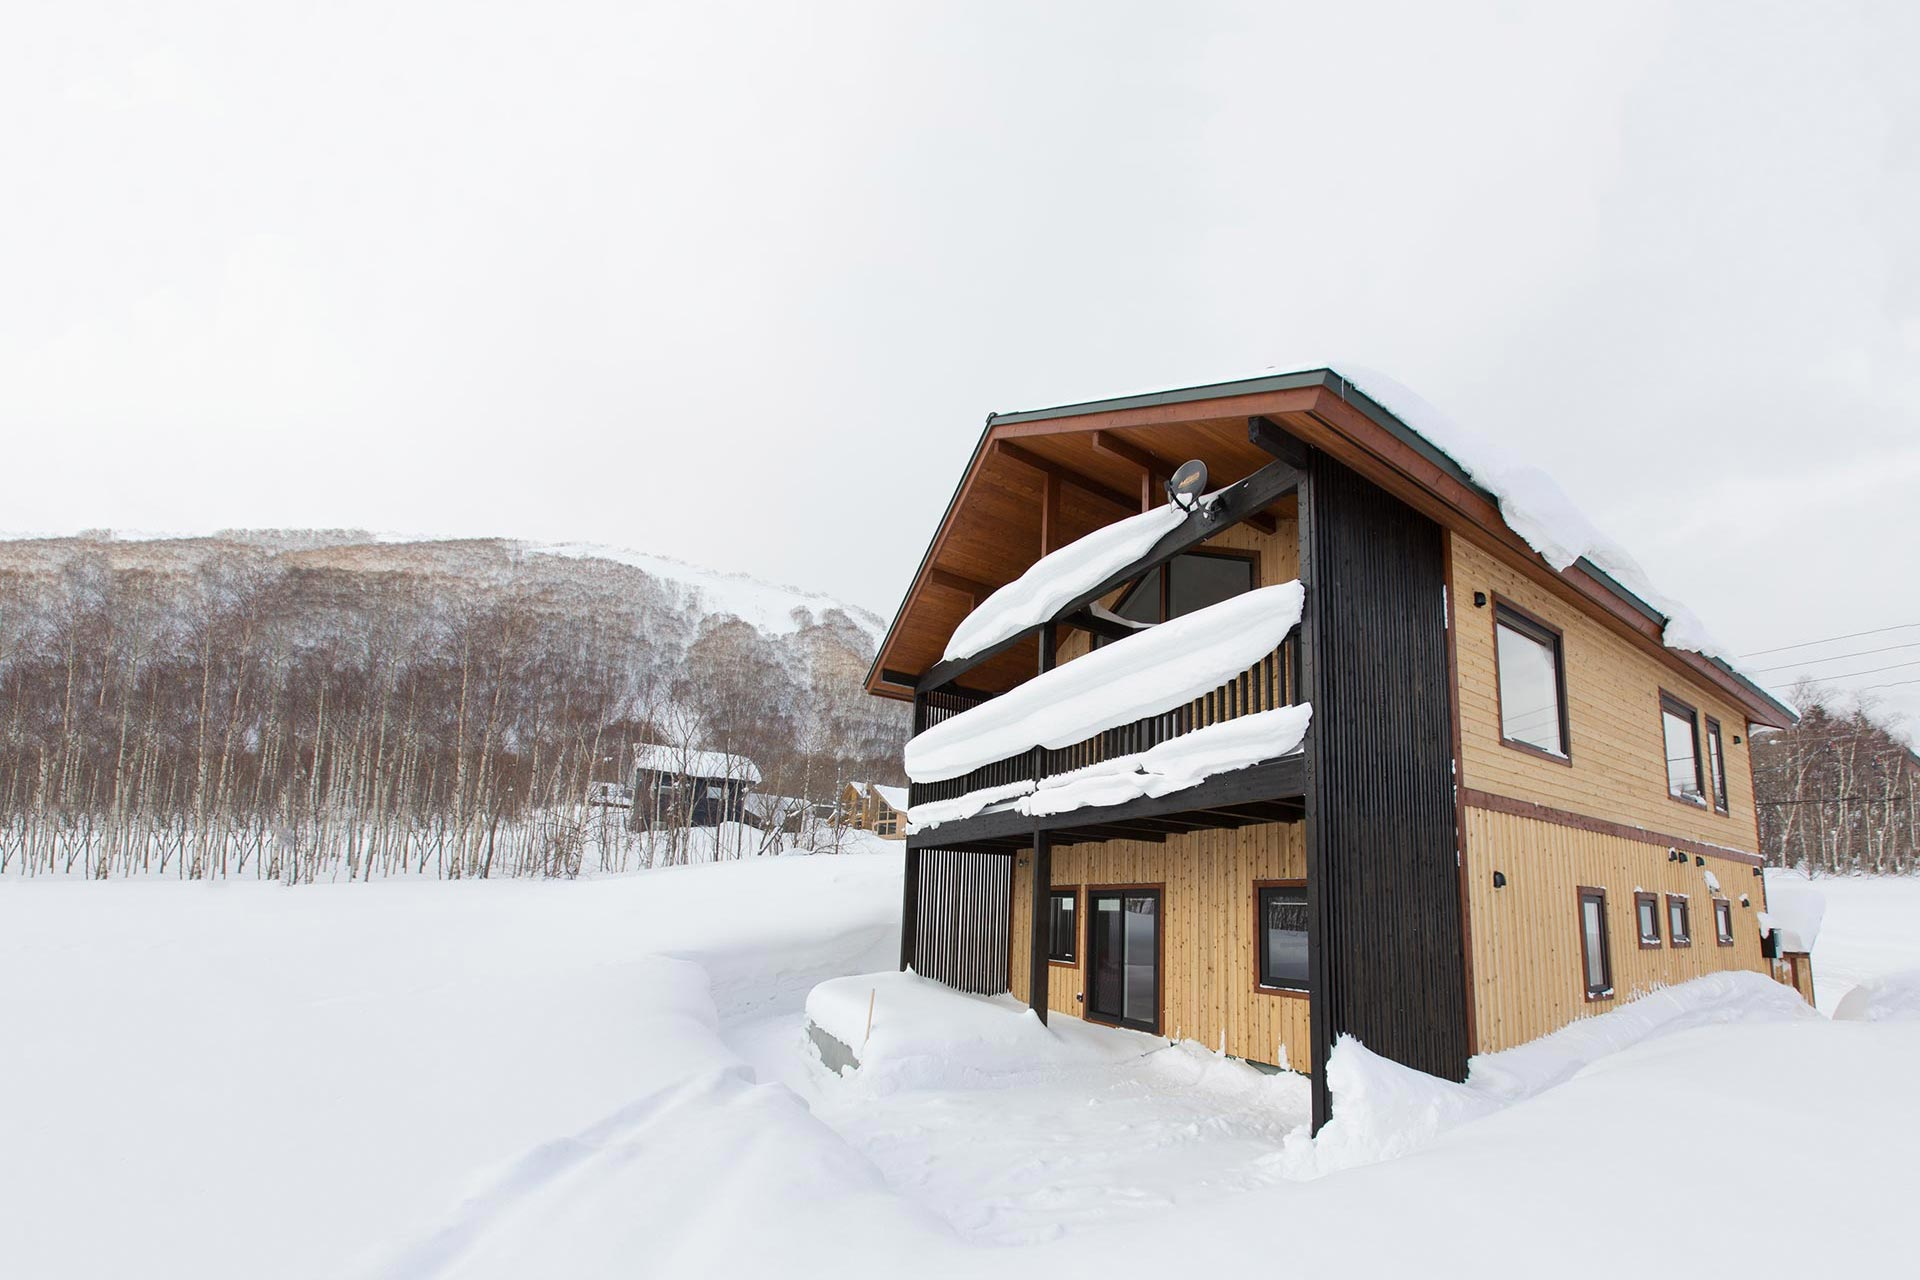 Timbercrafted Homes - Niseko Construction, Niseko Builder, Niseko Custom Homes